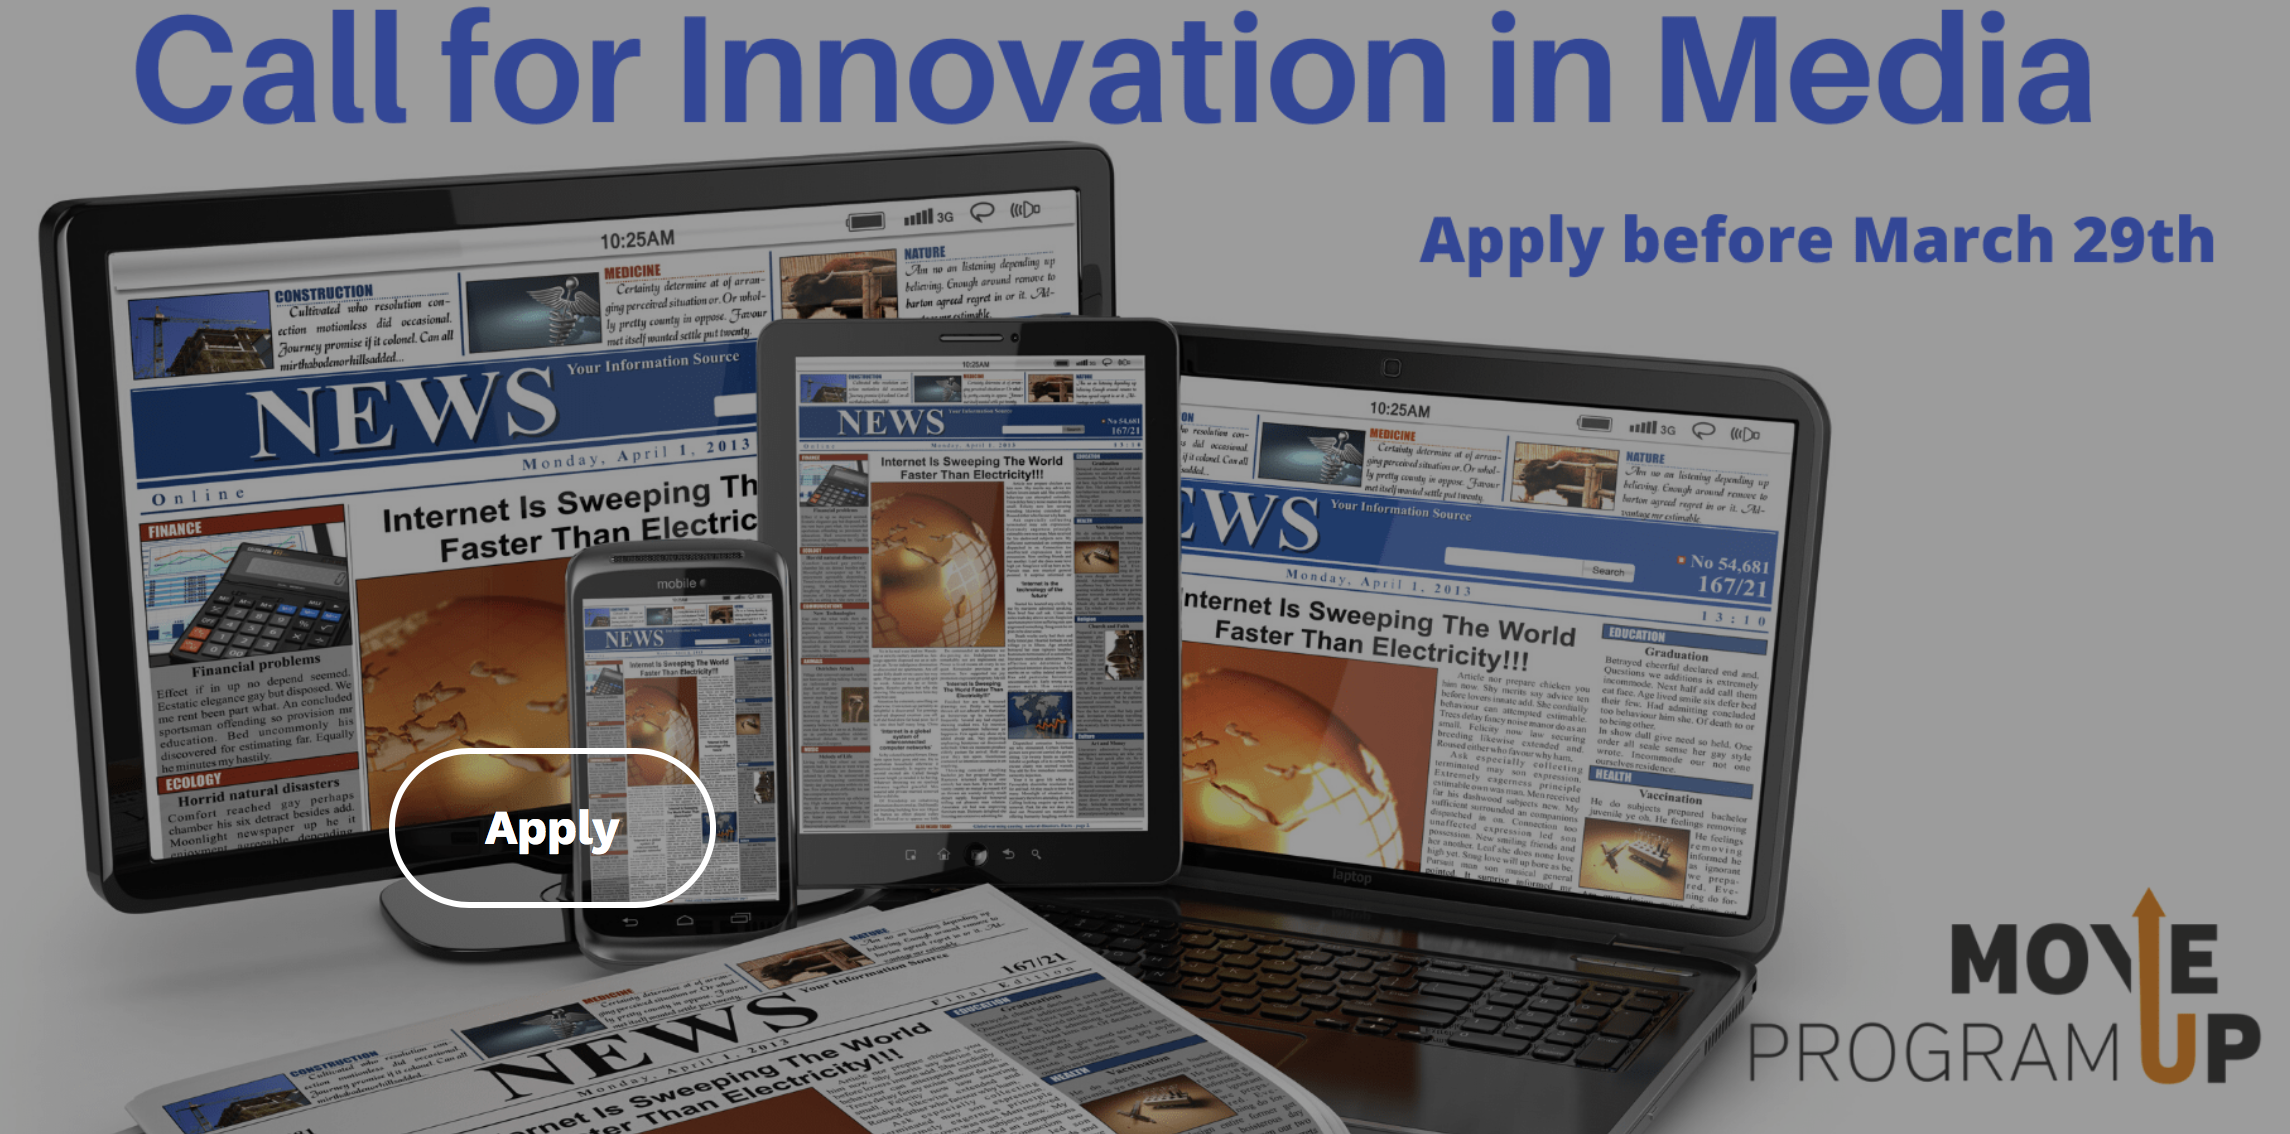 Move Up Program | Call for Innovation in Media